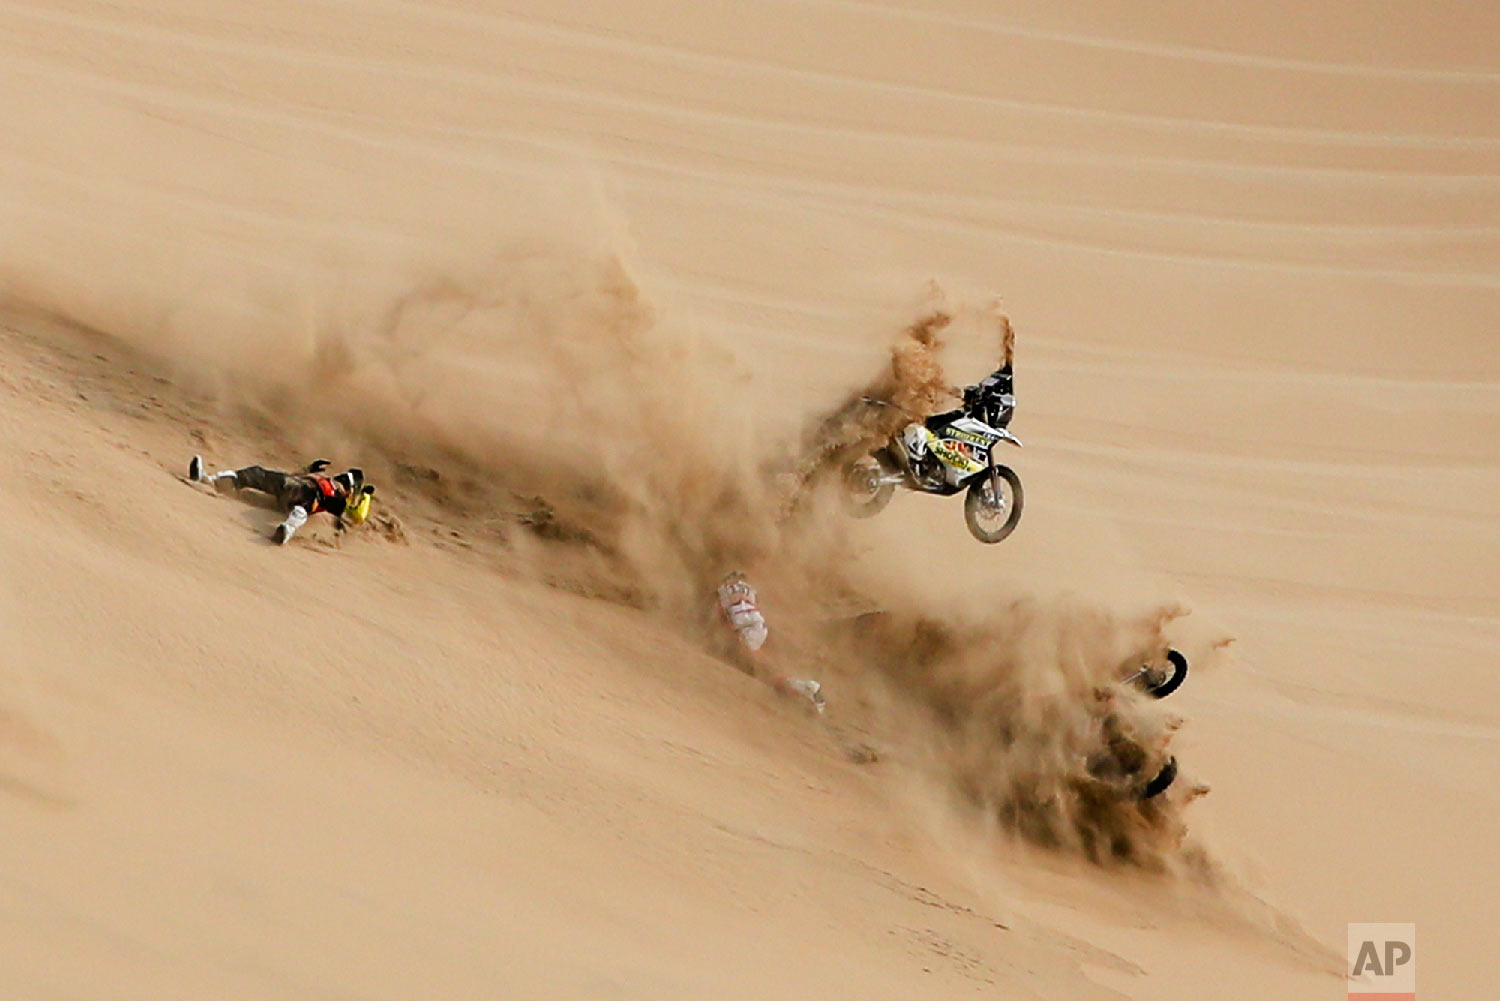 Husqvarna motorbike rider Jan Brabec of Czech Republic left, and KTM rider Cesar Pardo of Peru fall during the stage nine of the Dakar Rally in Pisco, Peru, Jan. 16, 2019. (AP Photo/Ricardo Mazalan)